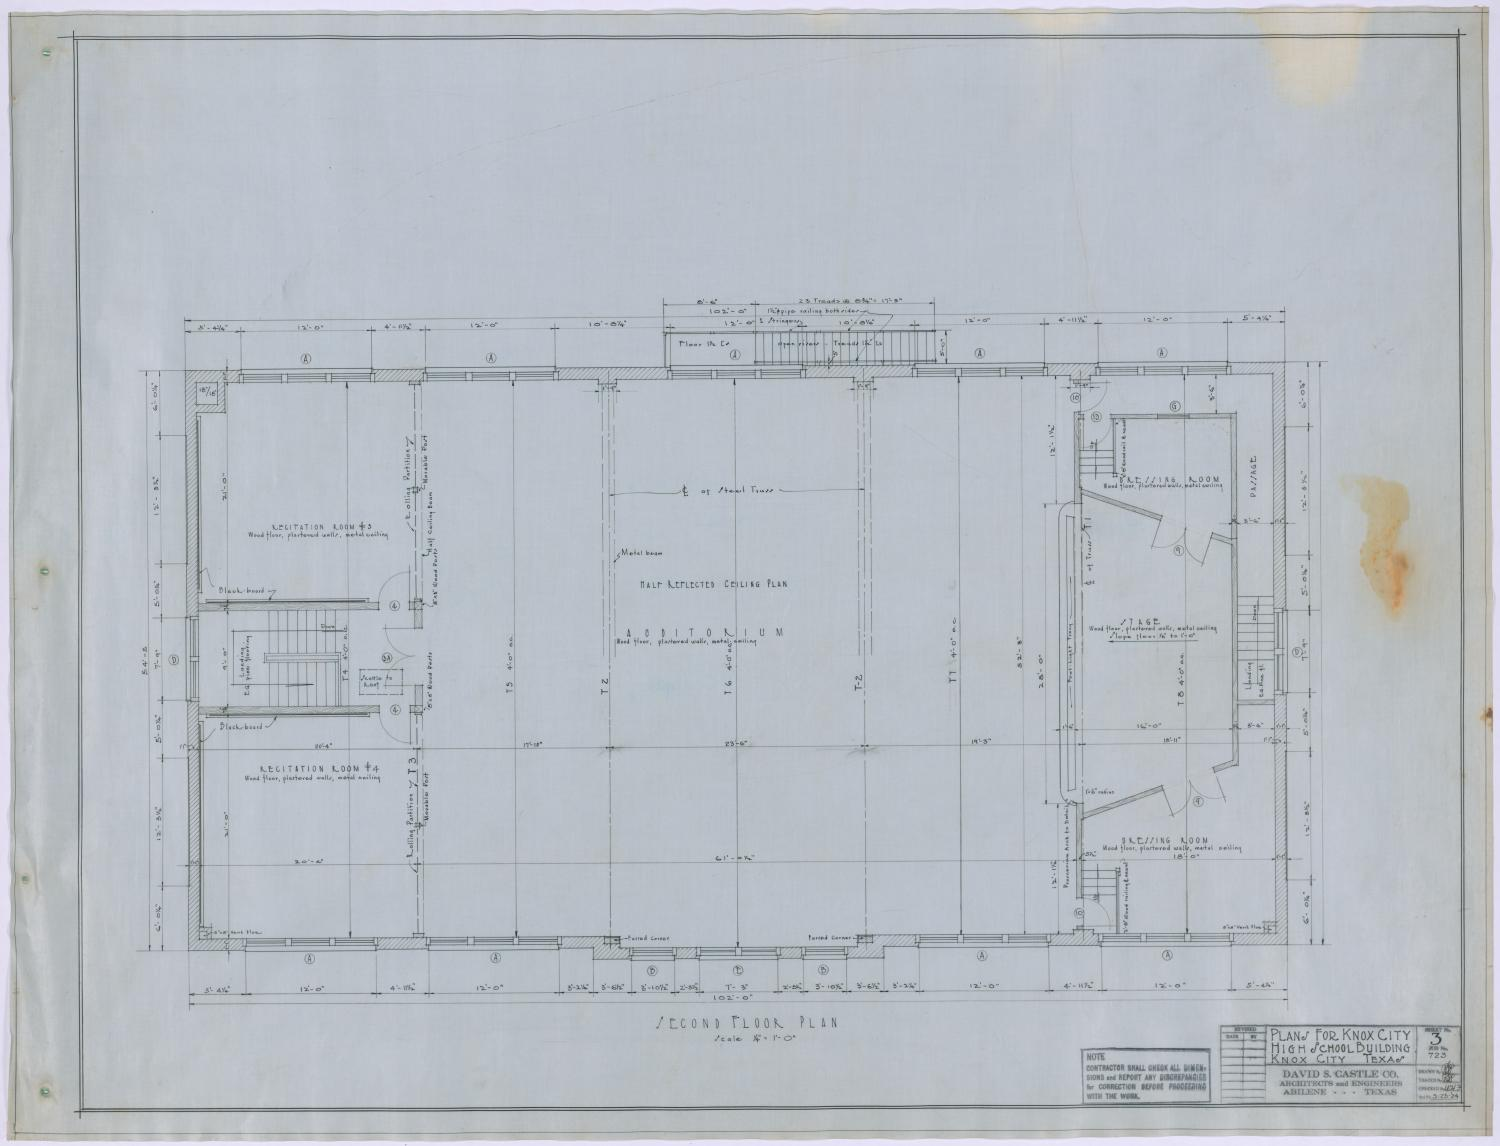 High School, Knox City, Texas: Second Story Floor Plan                                                                                                      [Sequence #]: 1 of 2